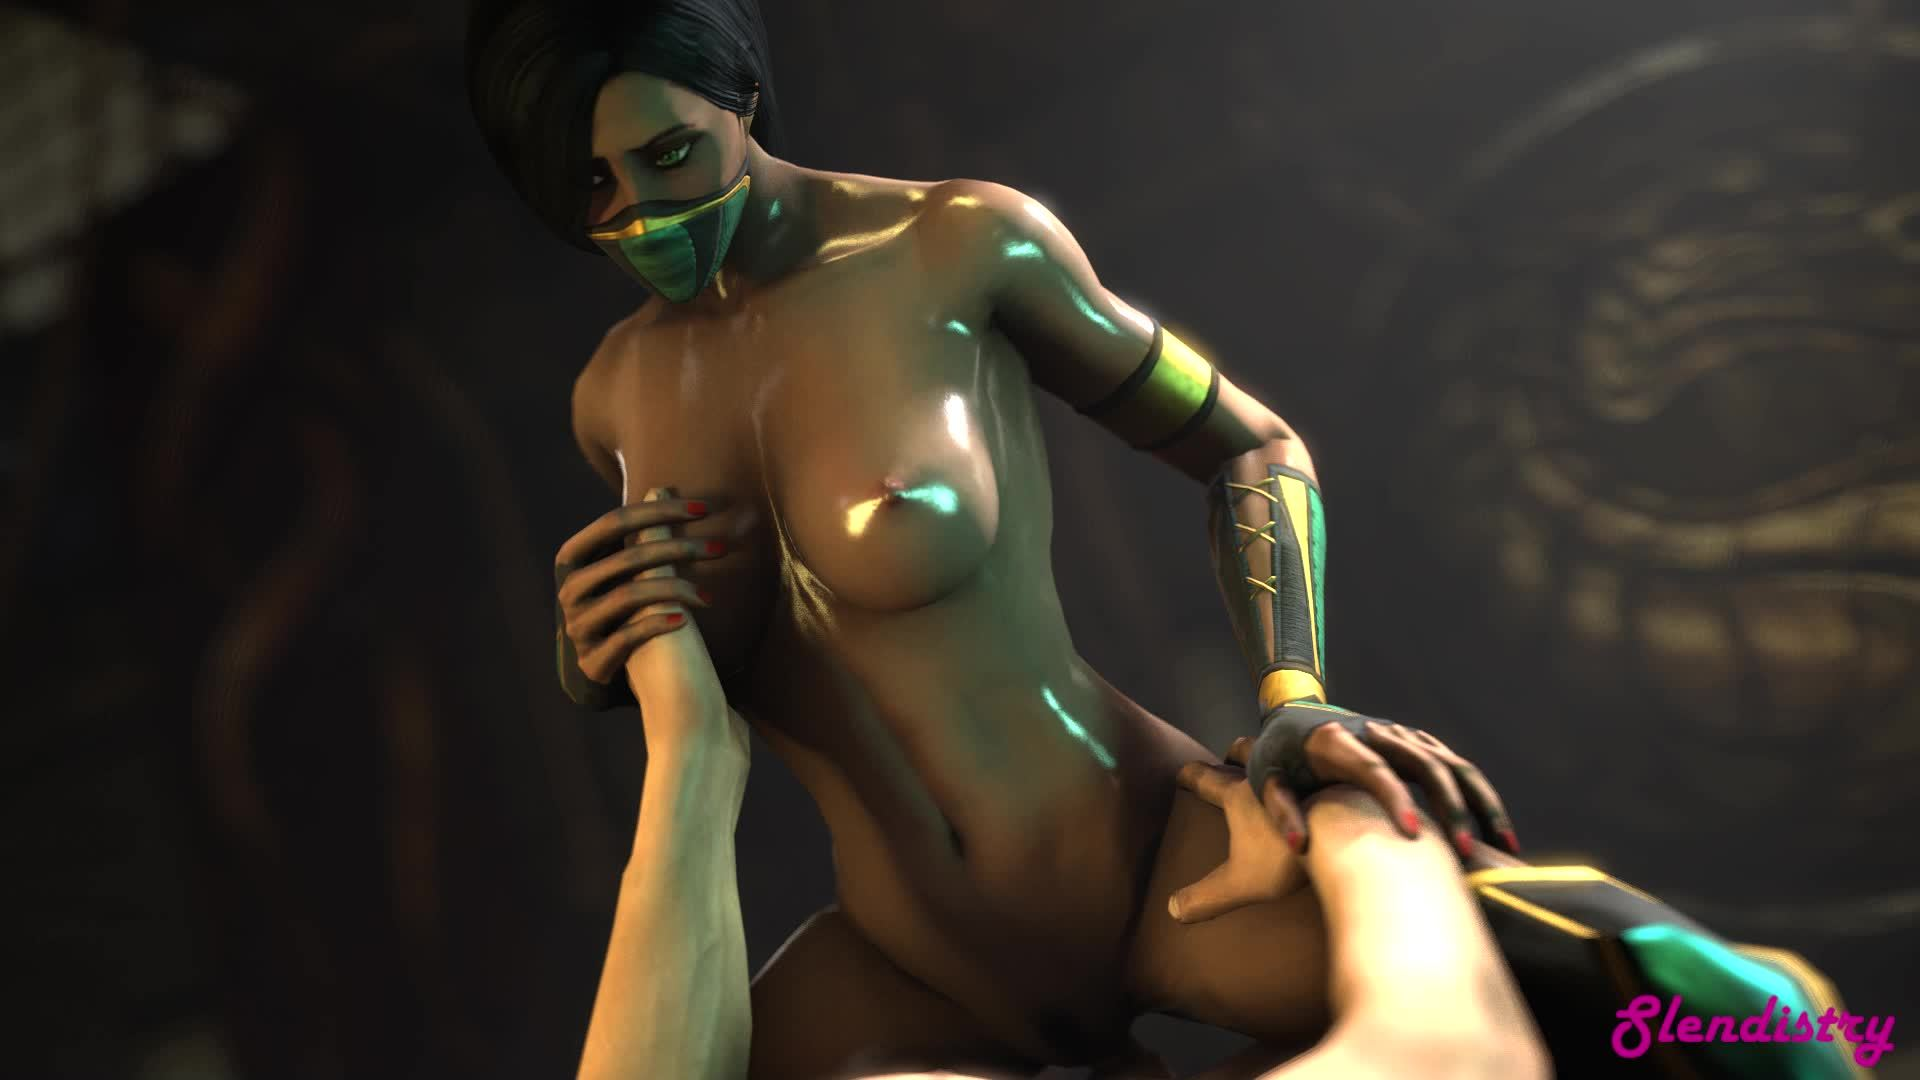 Sex mortal kombat photo hardcore download